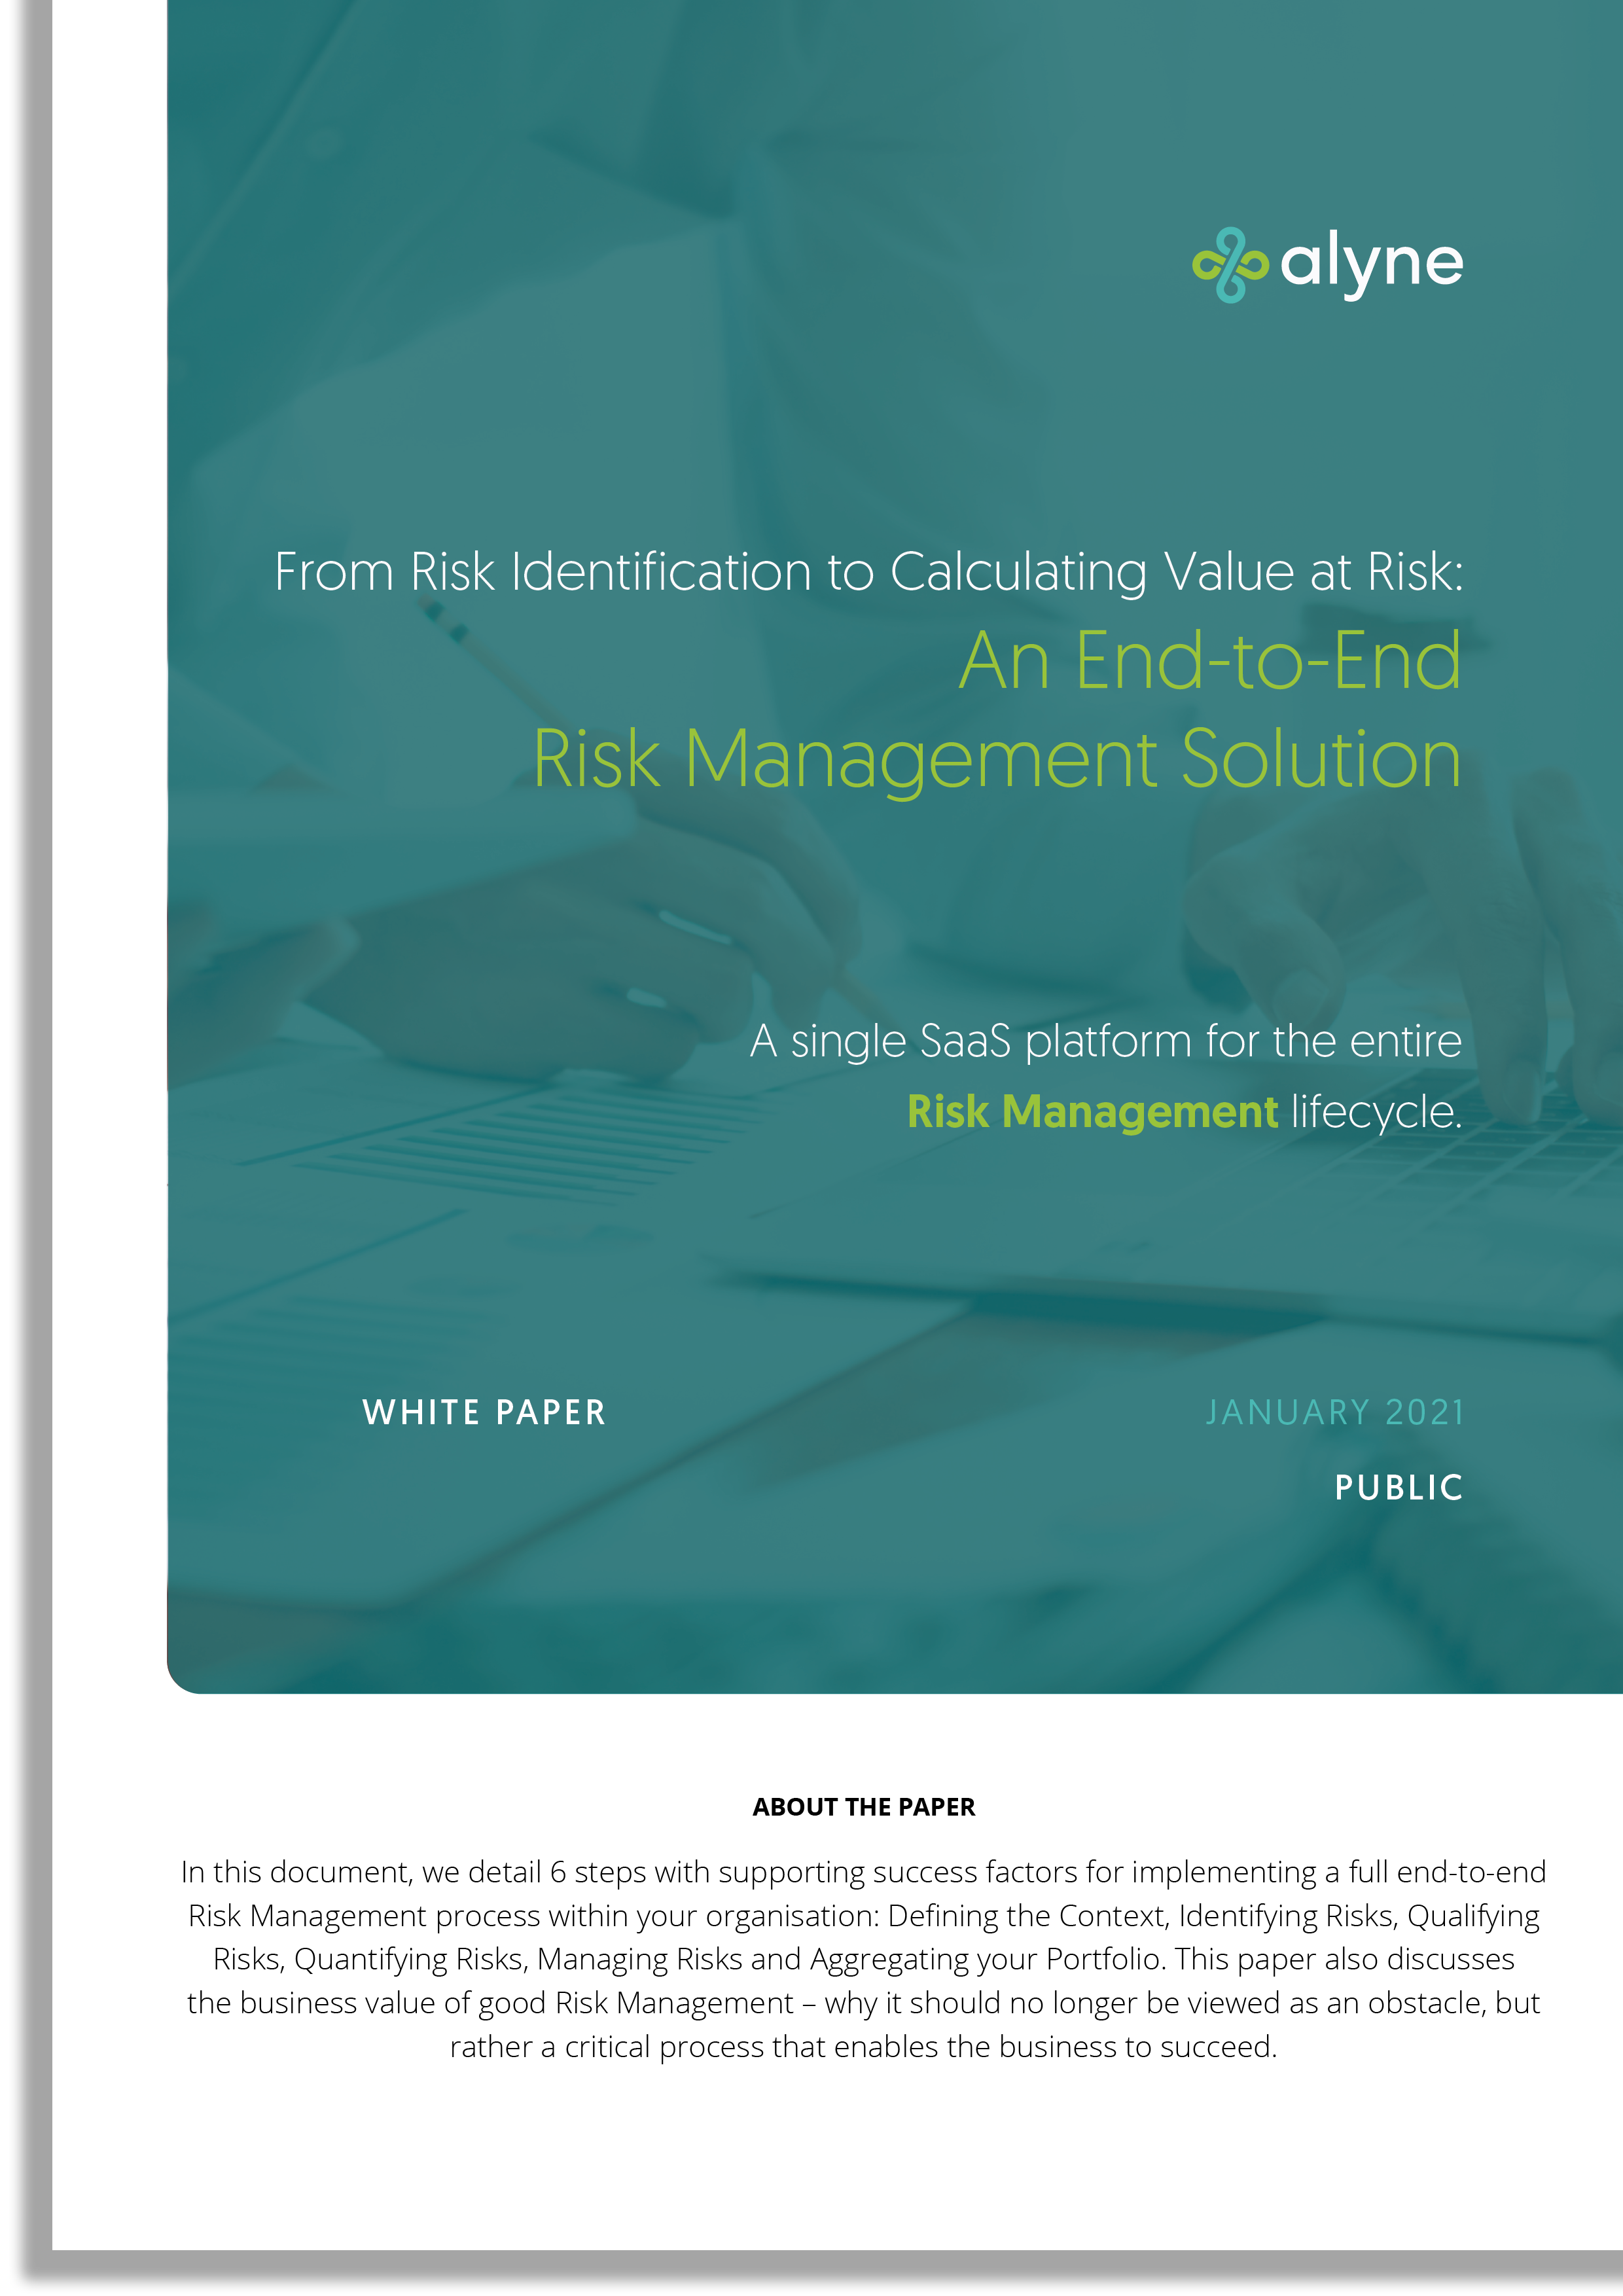 End to End Risk Management (Cover)